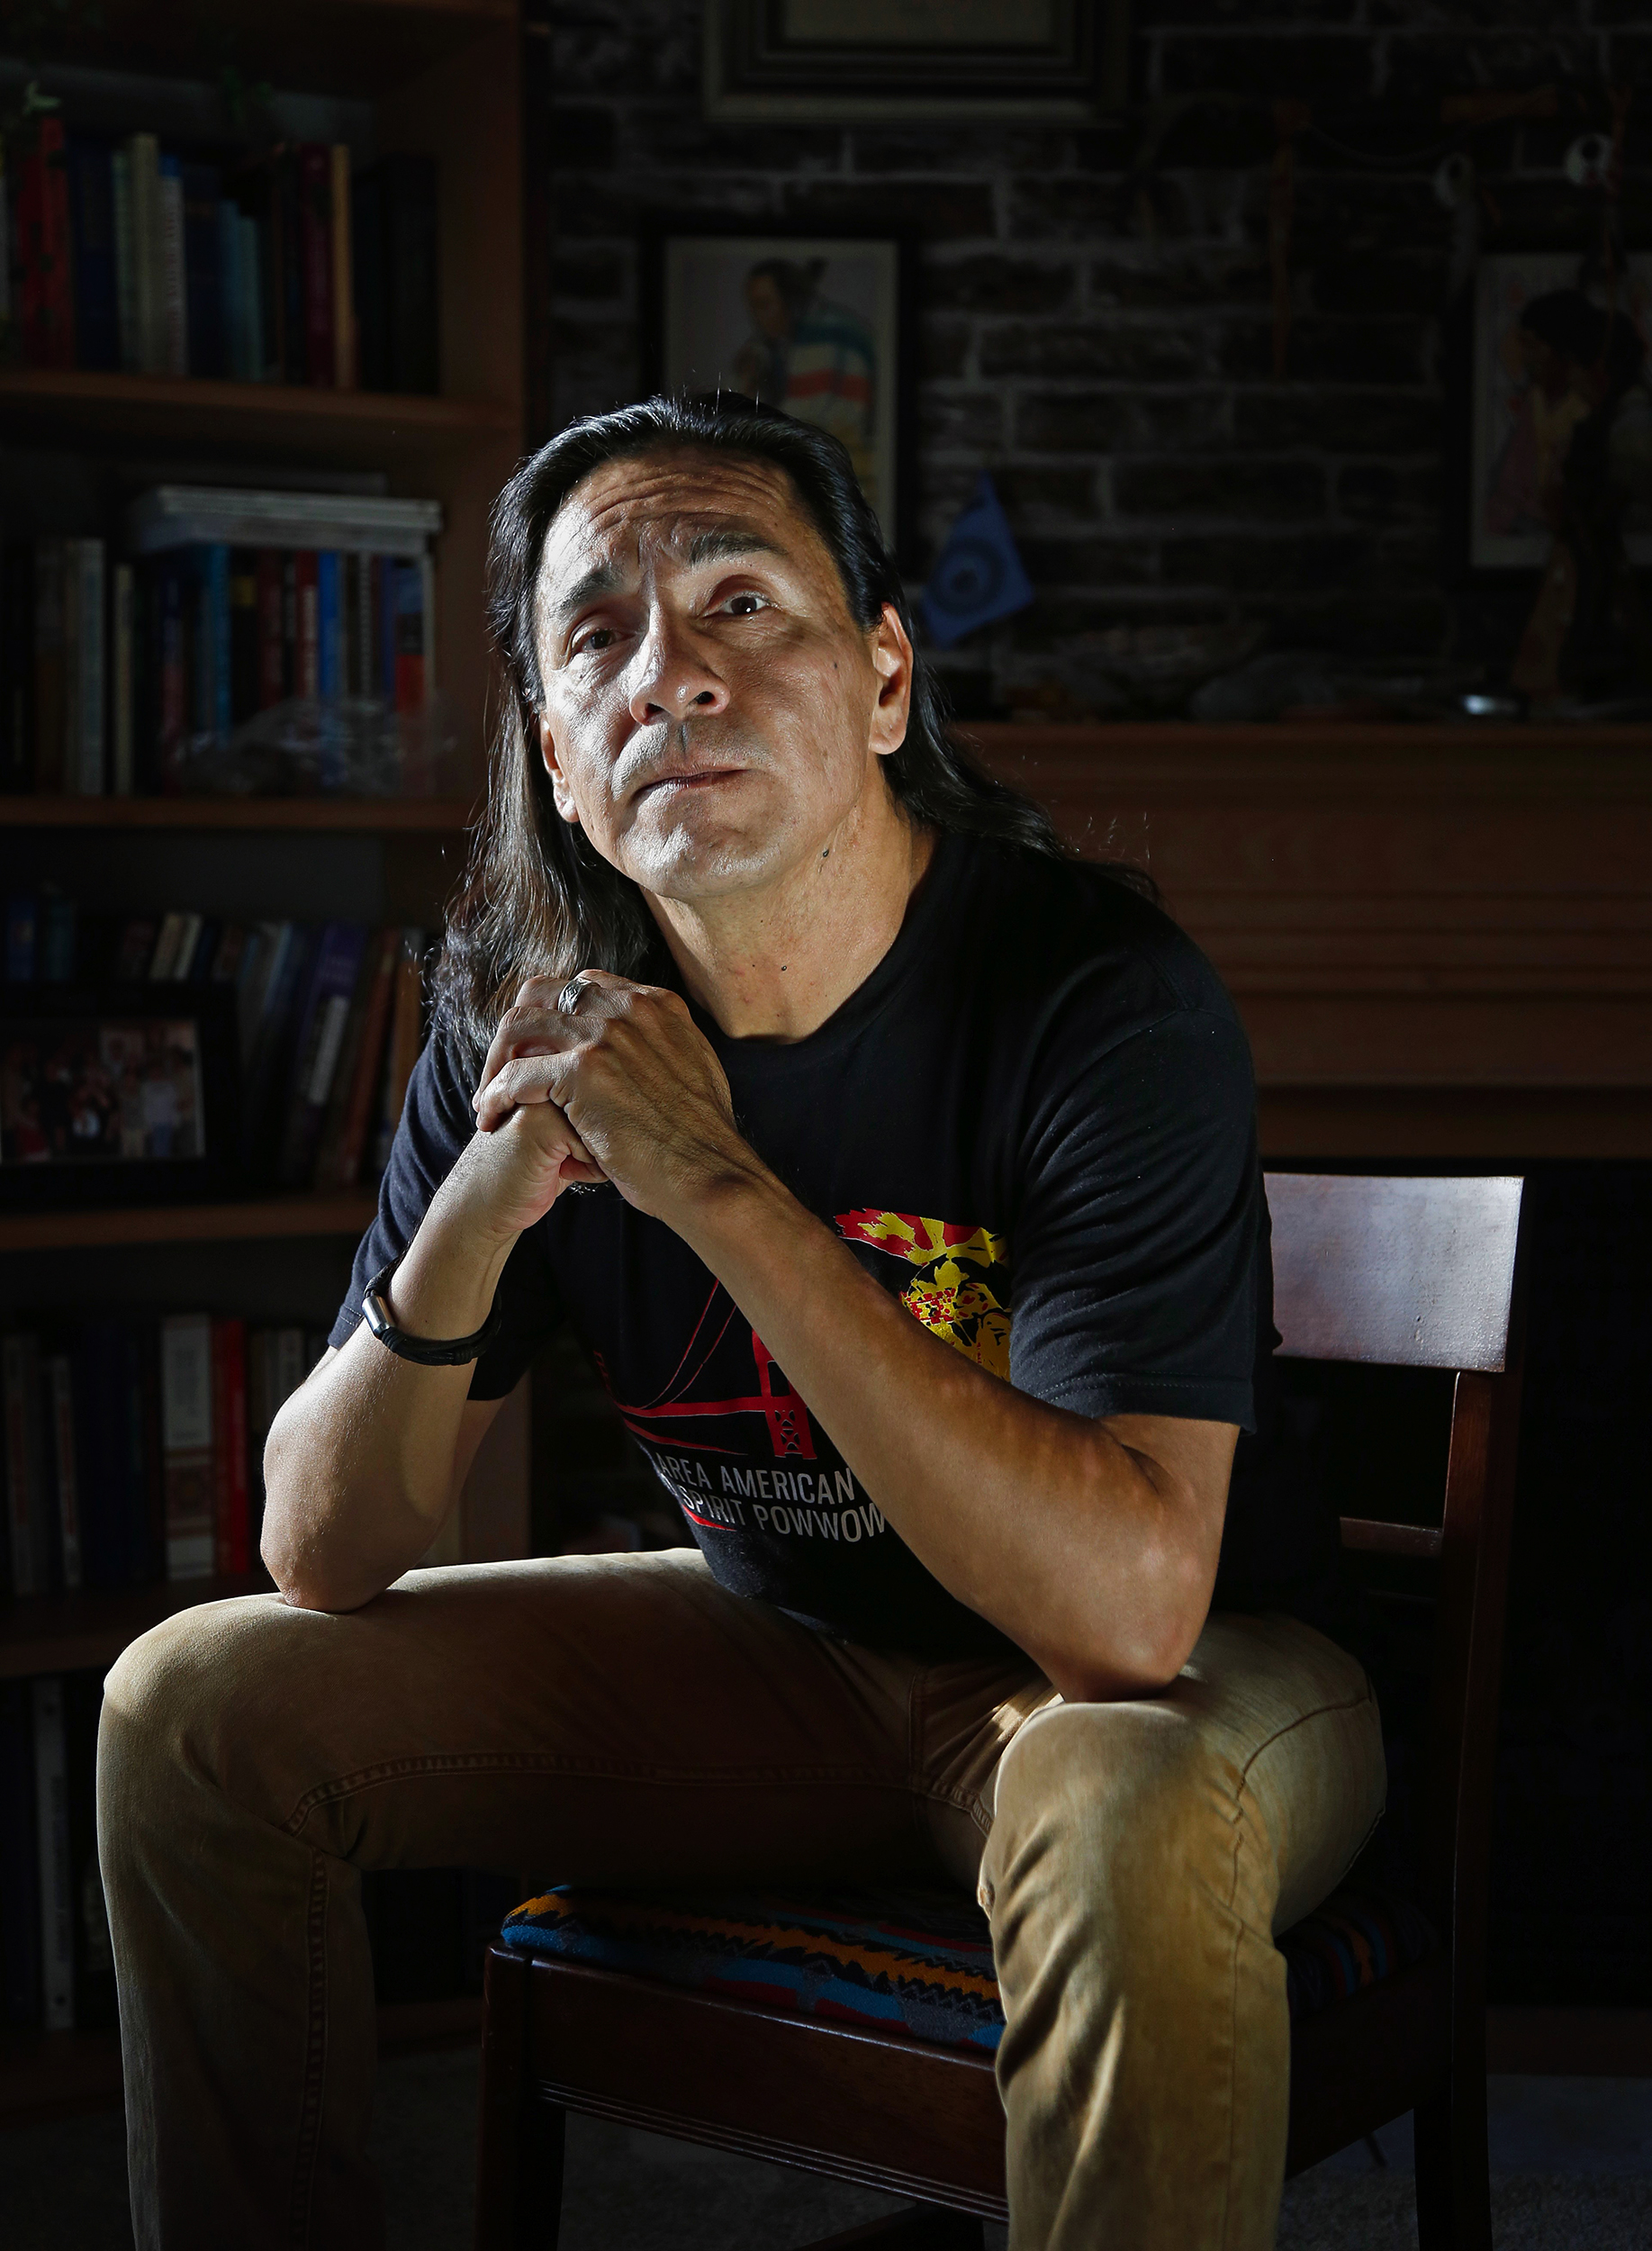 Raven Heavy Runner, a Native American who identifies as Two-Spirit, which is an early equivalent of LGBTQ that played a ceremonial role in some Native American tribes, Thursday, Aug. 27, 2015. Although much of the understanding of this identity has been lost due to cultural assimilation, there has been a resurgence since the 1990s. (Sy Bean / The Seattle Times)